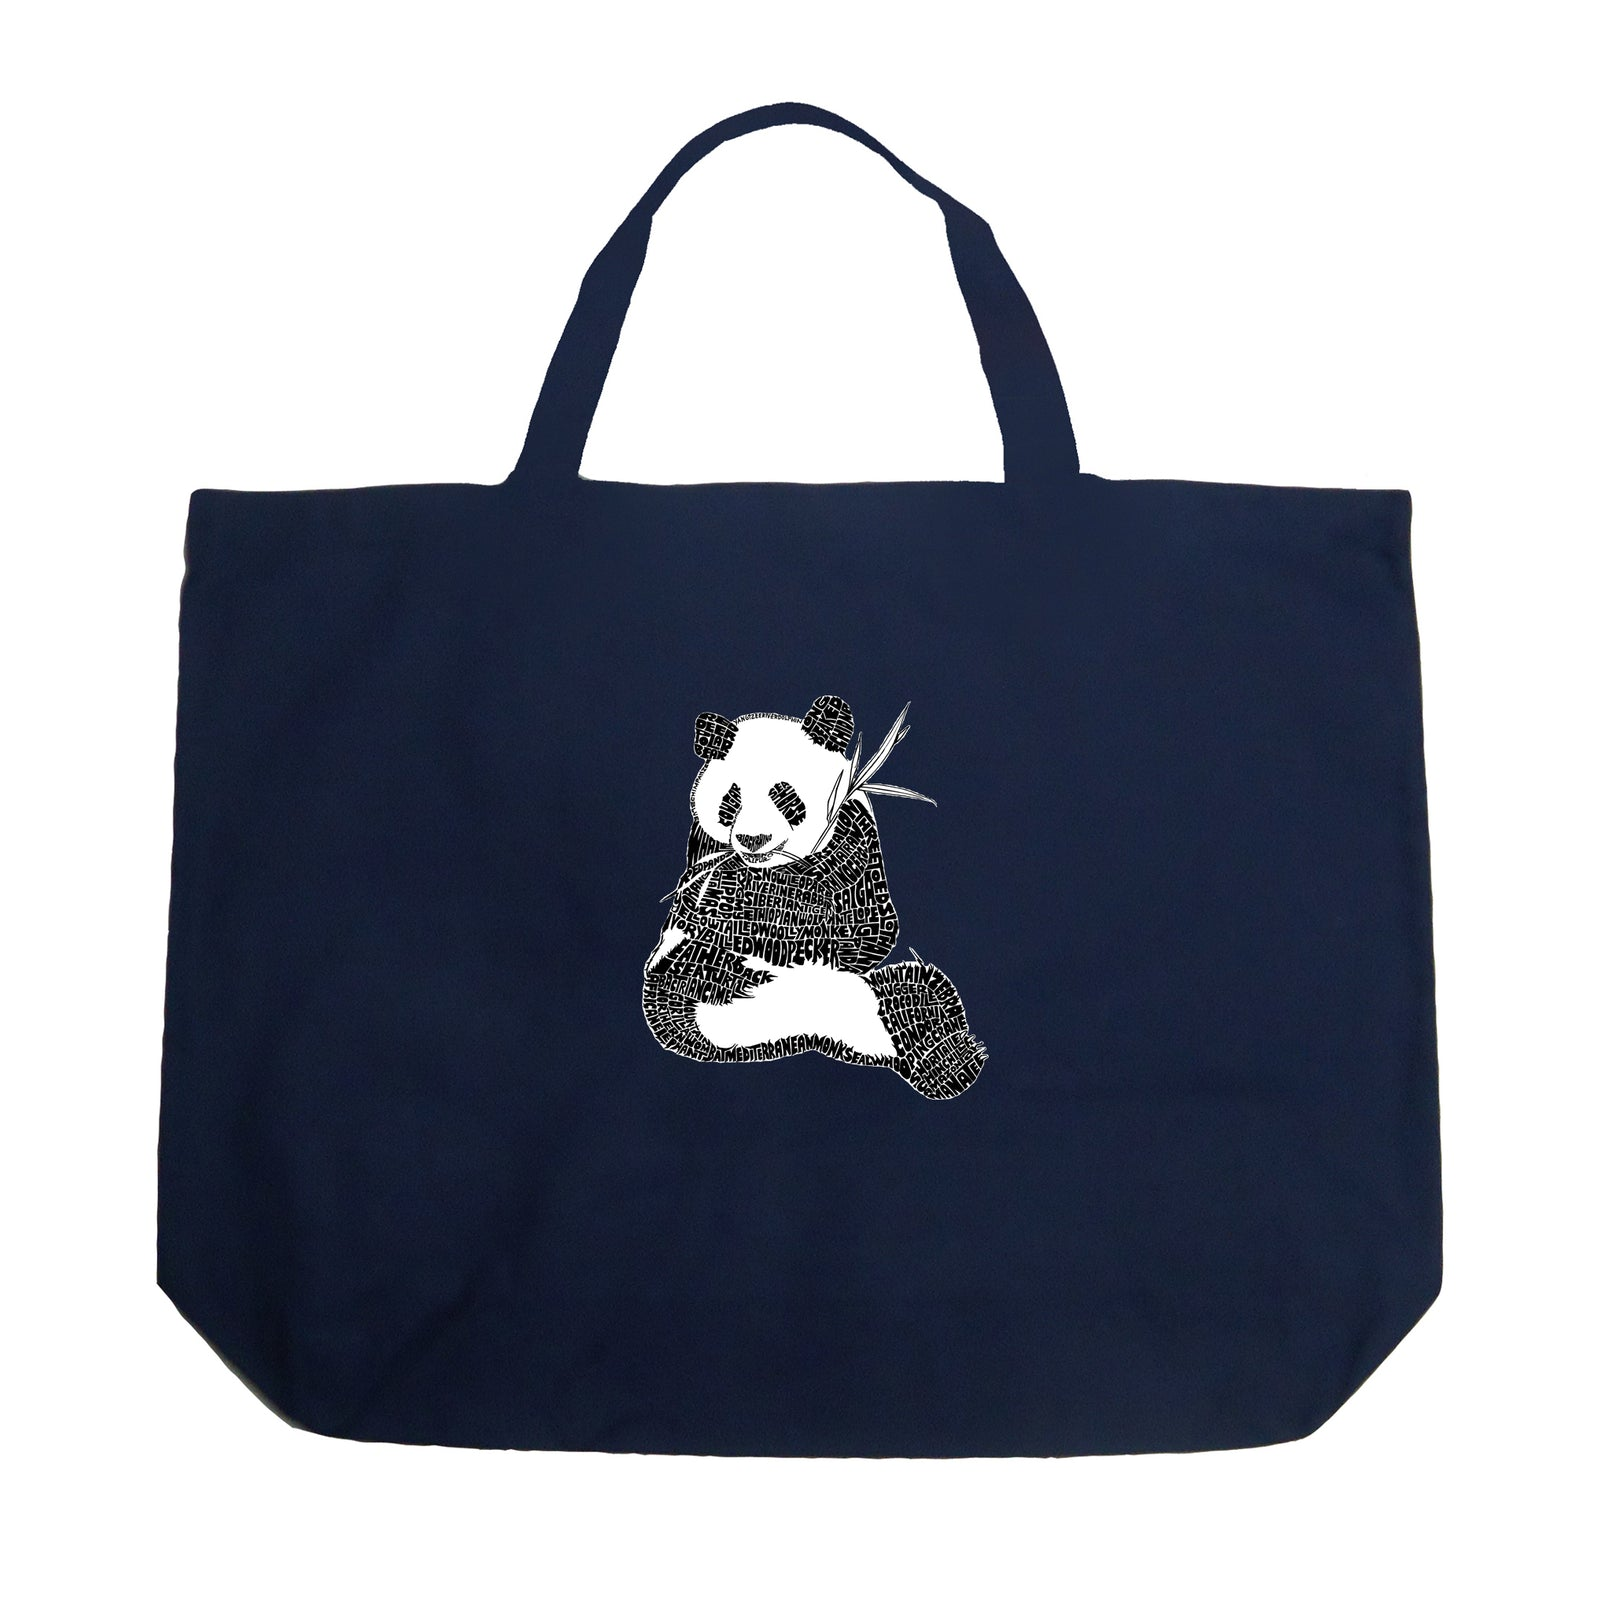 Large Tote Bag - ENDANGERED SPECIES